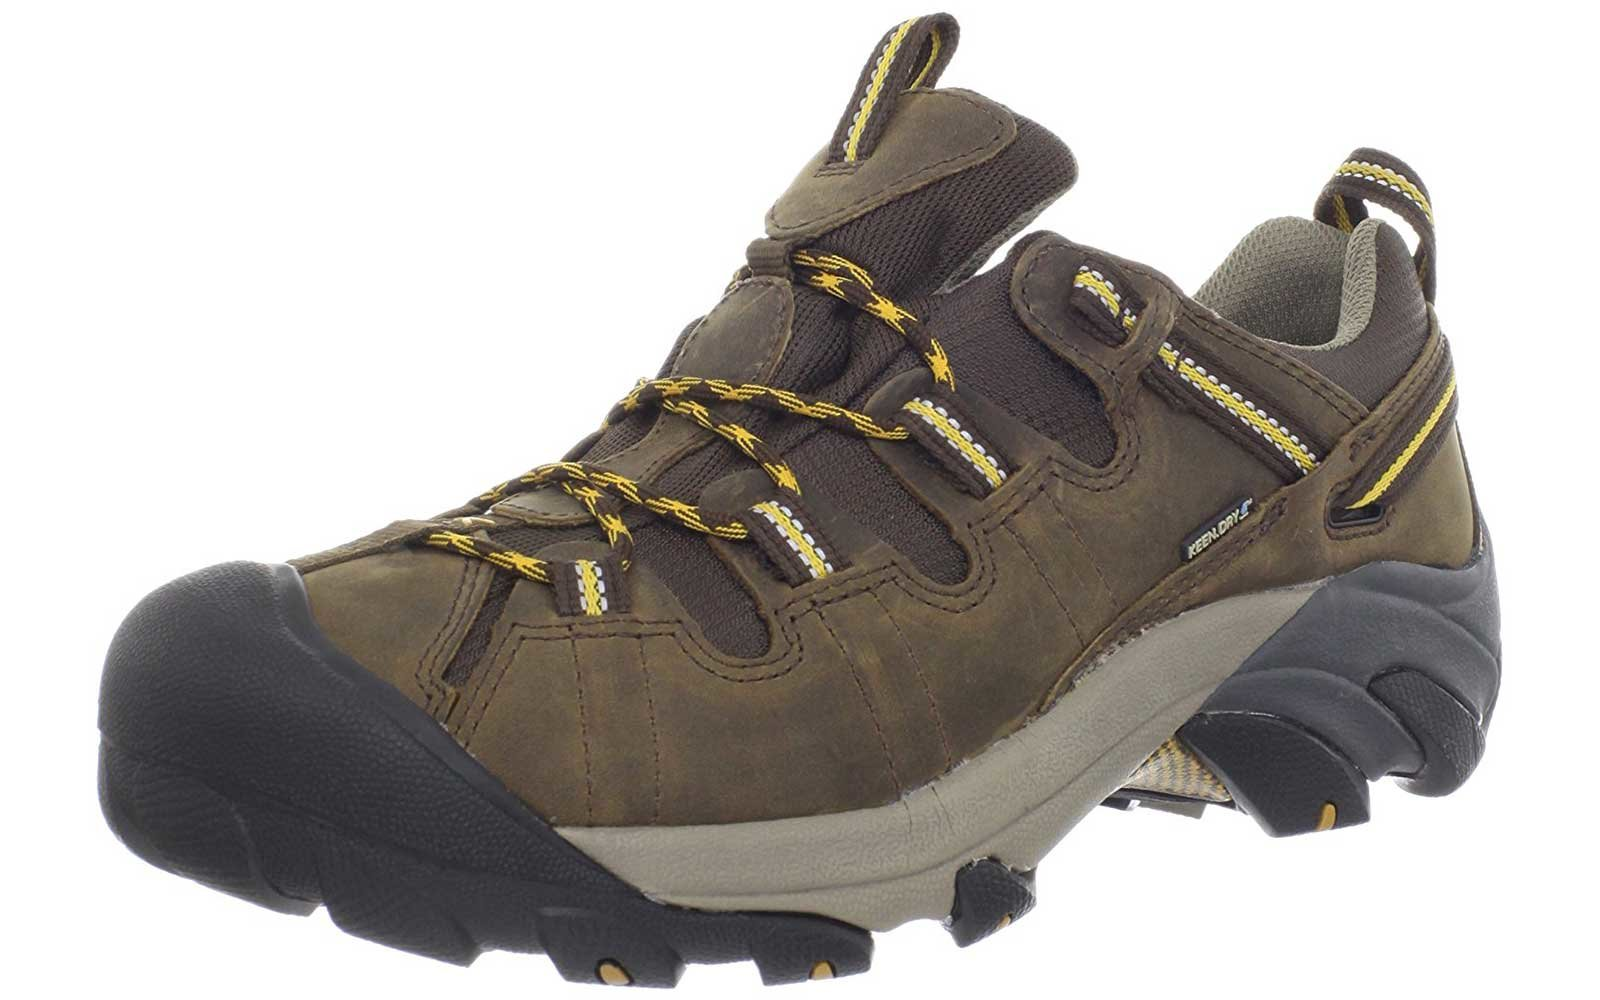 Keen Men's Hiking Boot